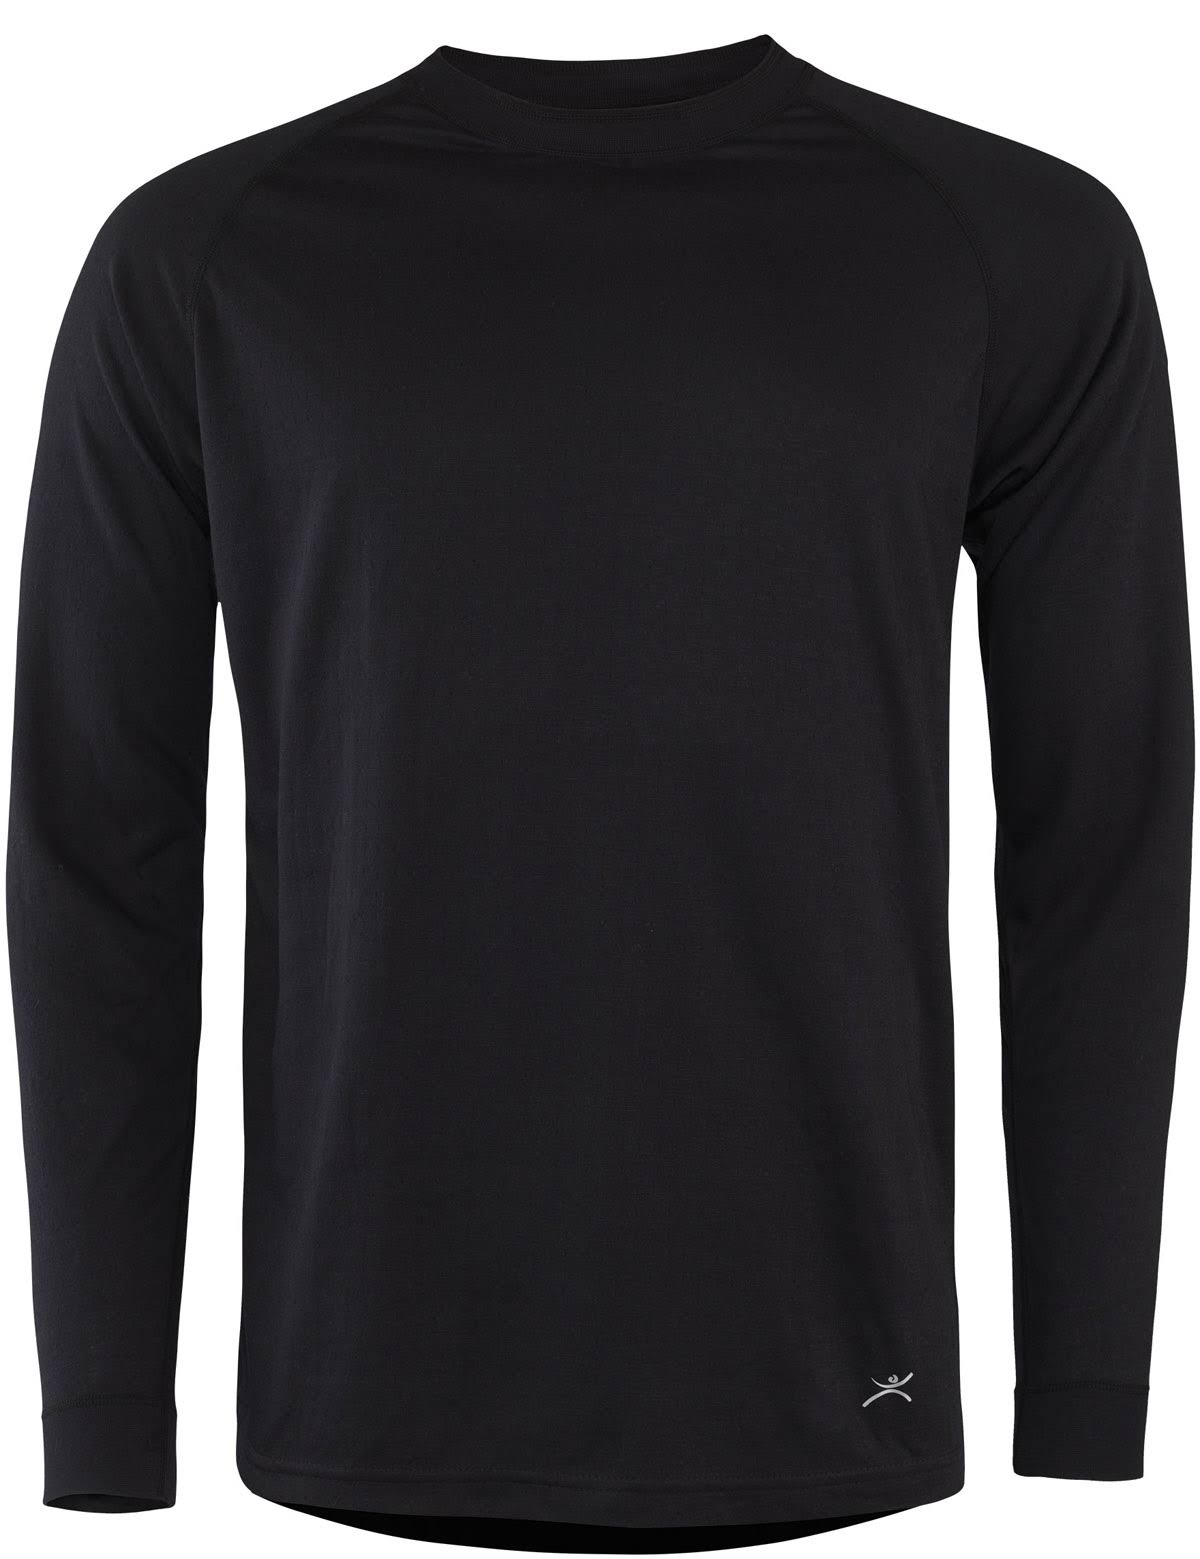 Terramar Sports Men's 2 Layer Authentic Thermal Crew - Black, Medium